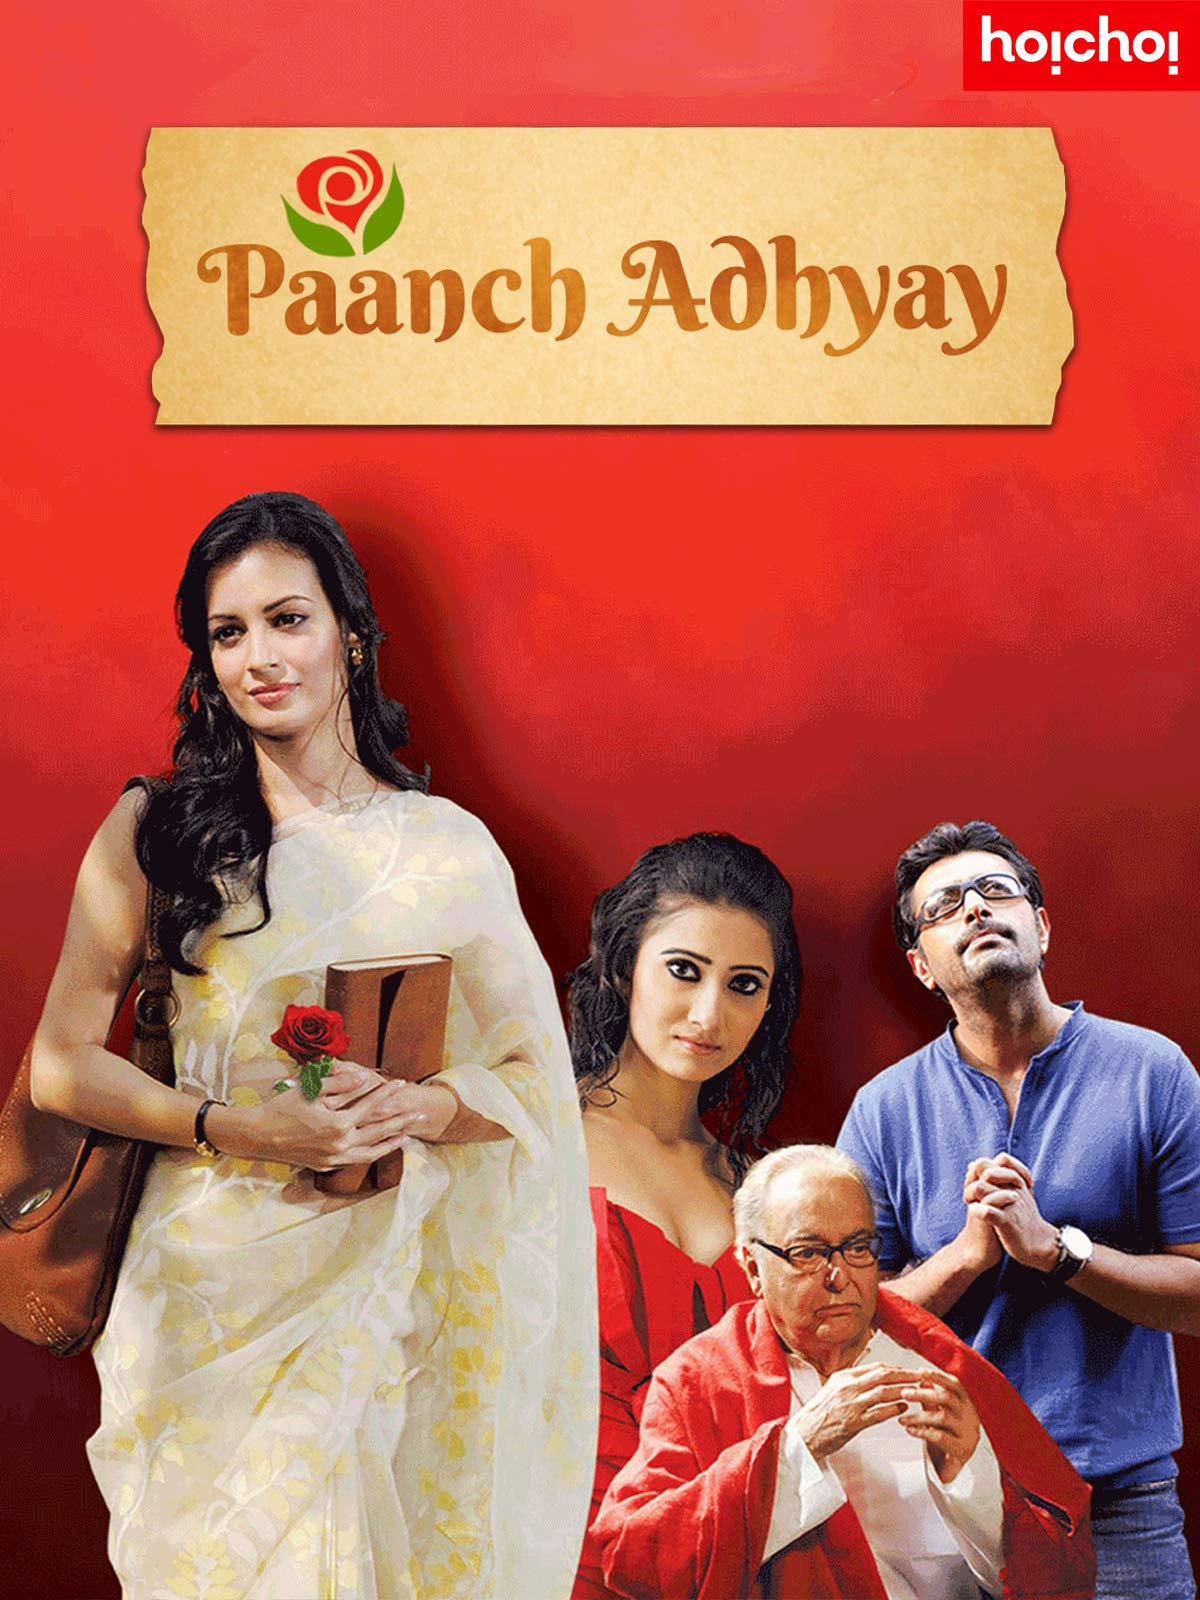 Watch Paanch Adhyay Prime Video